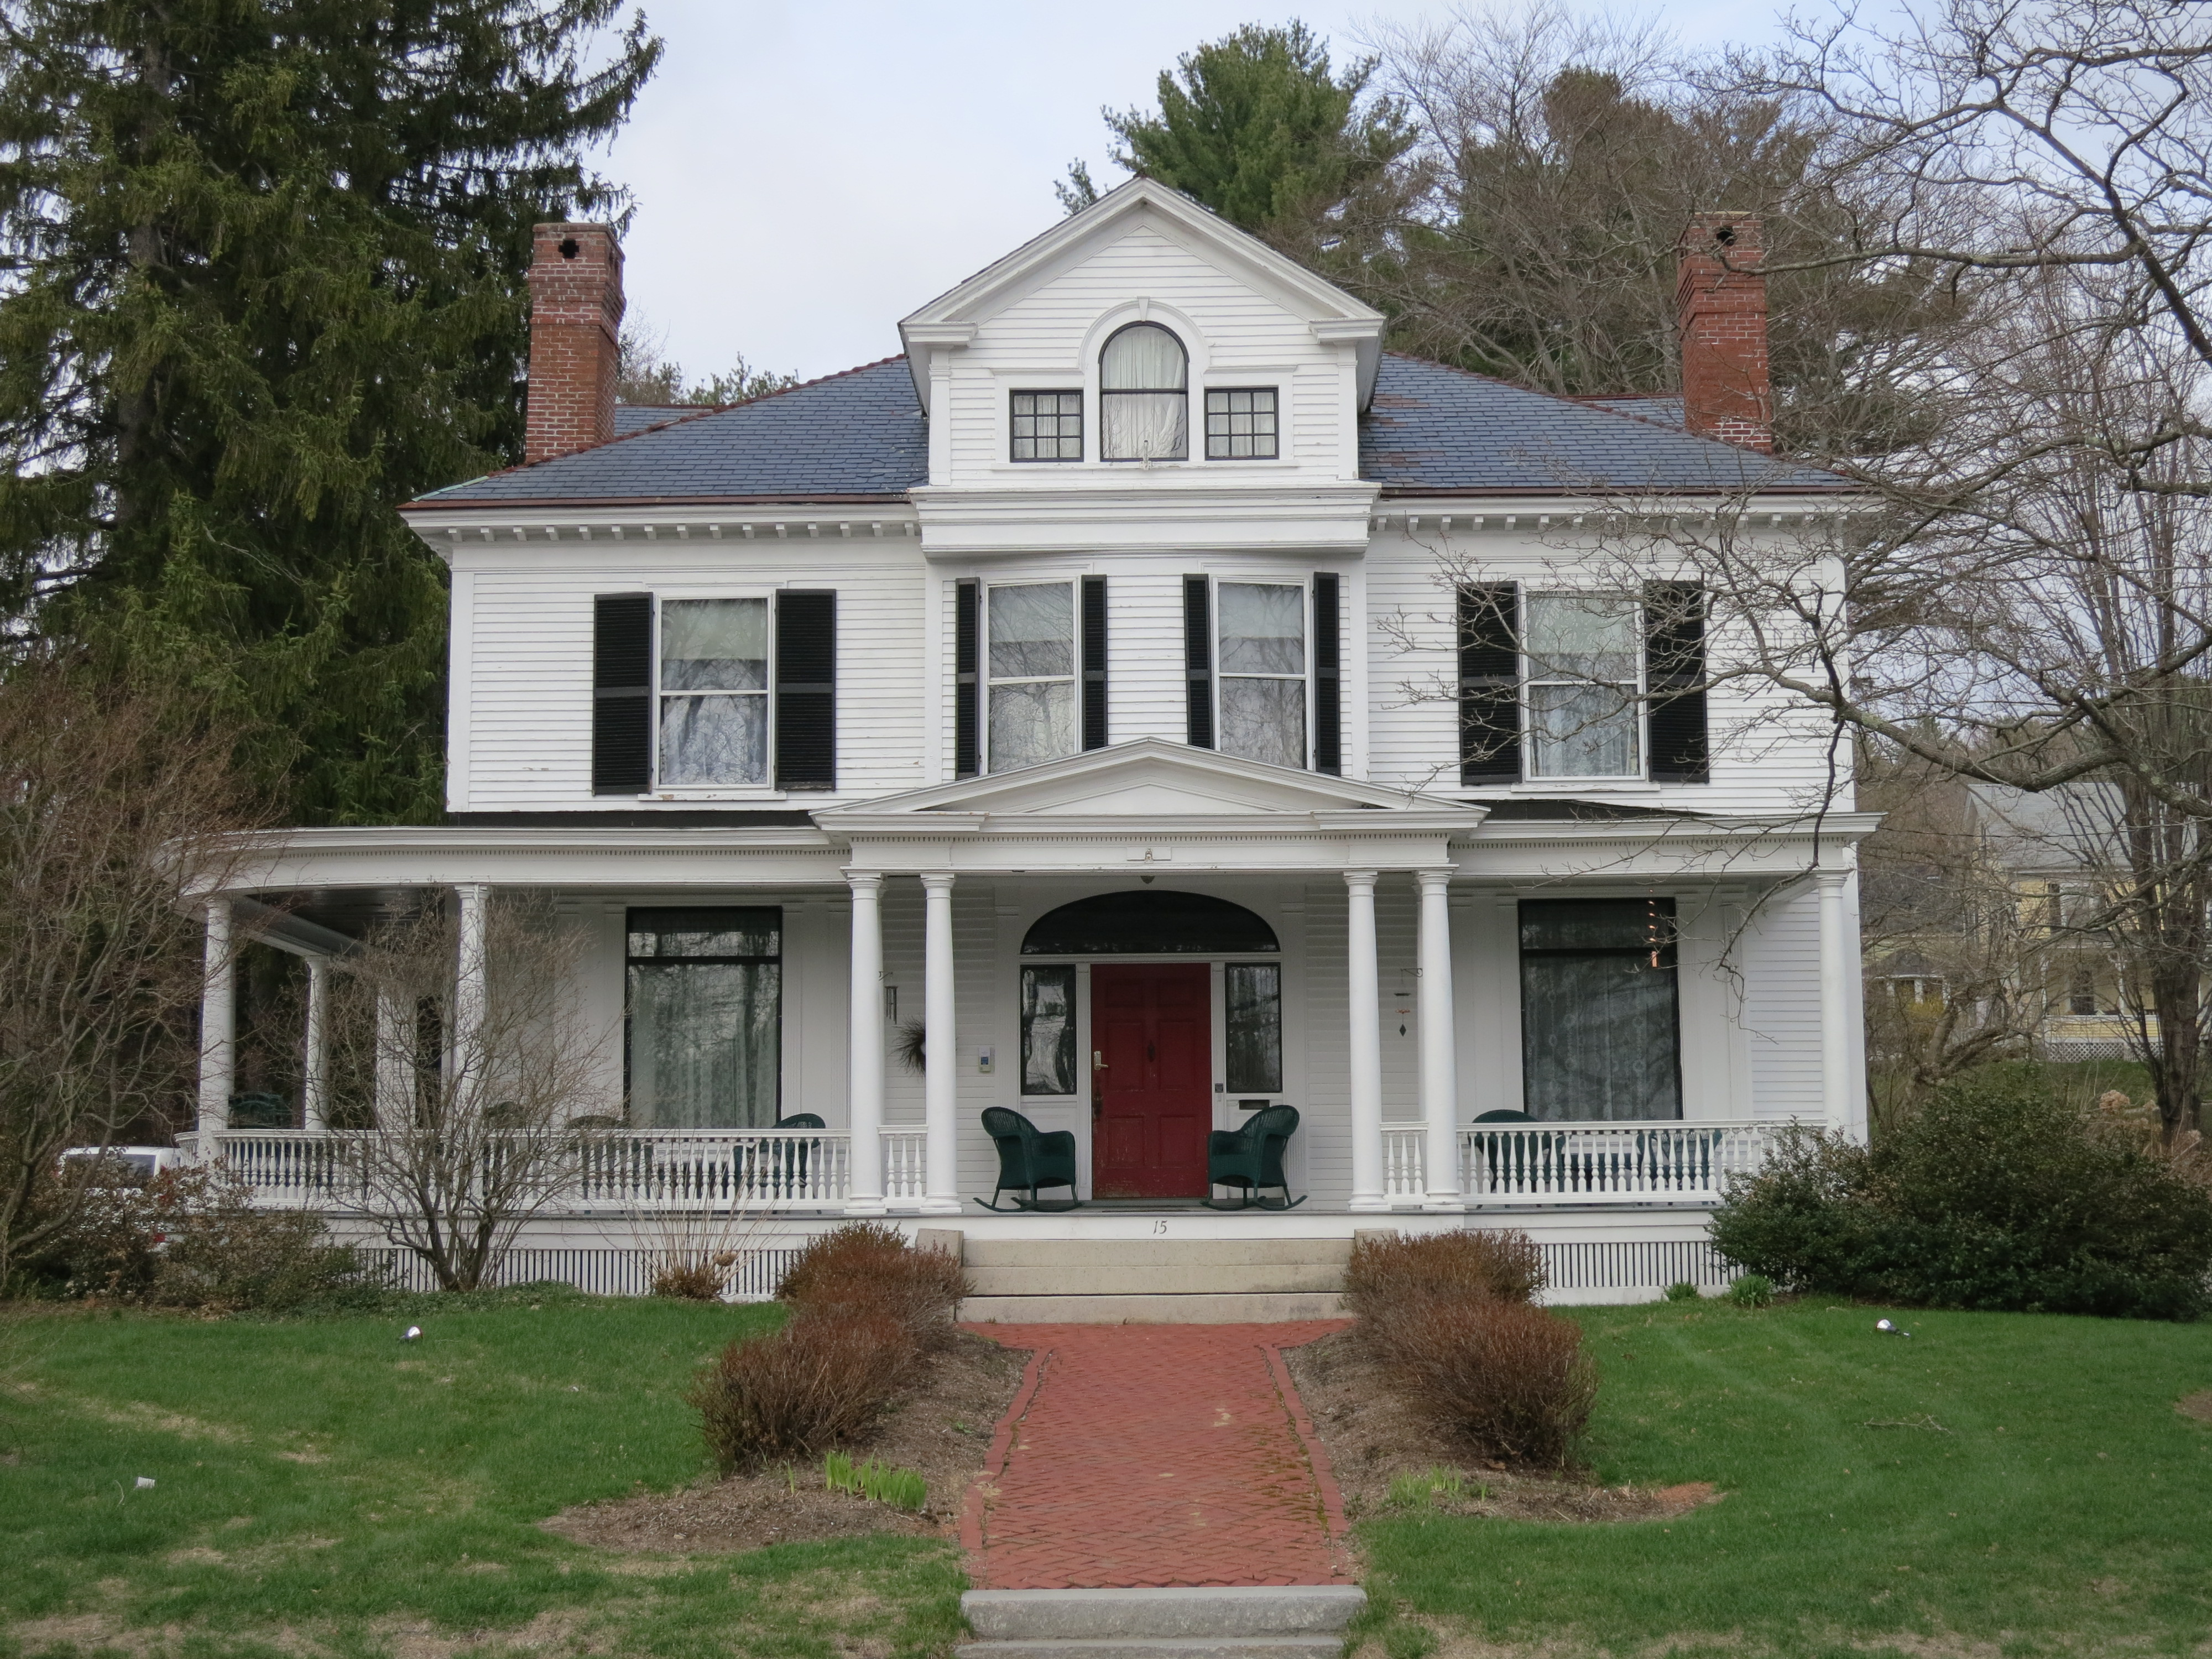 Home of George C. Yeaton, lawyer